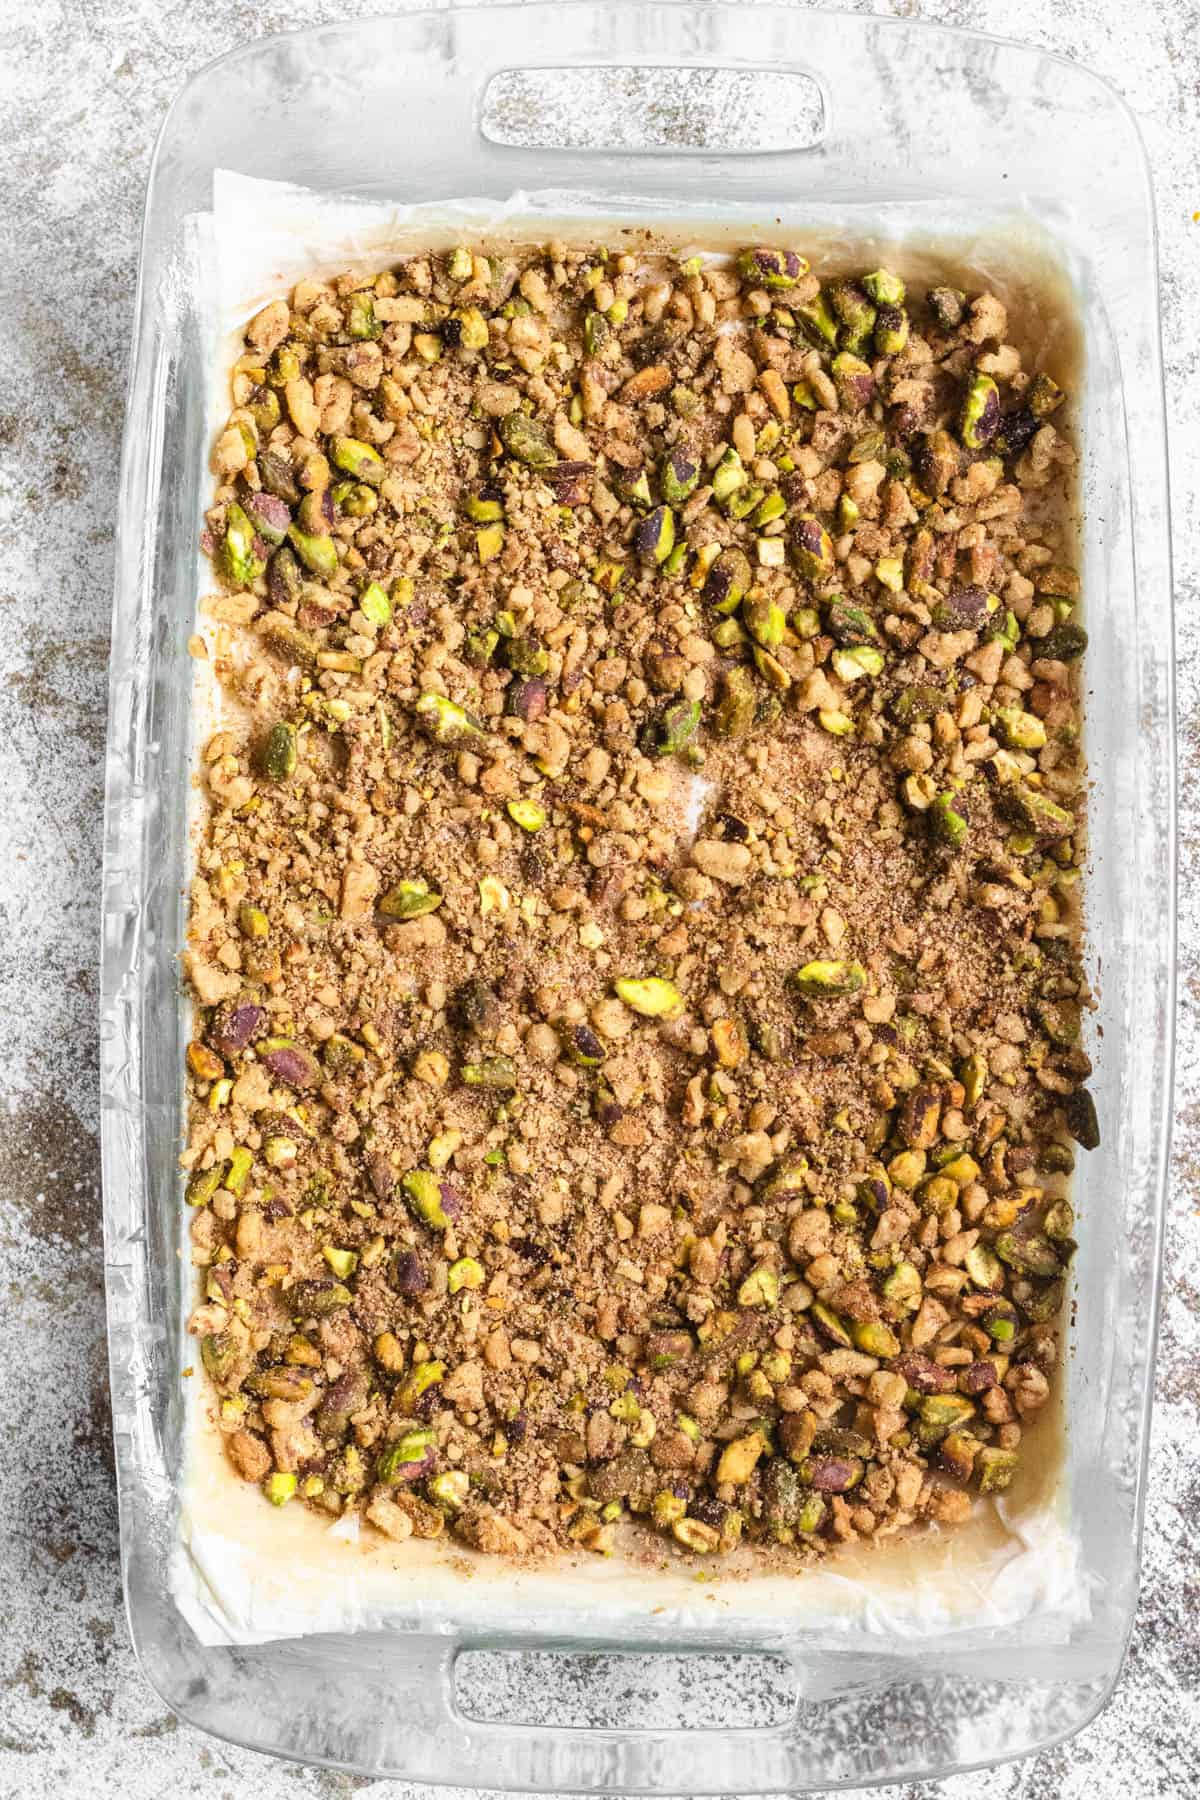 9x13 pan with nut mixture laid over the phyllo dough